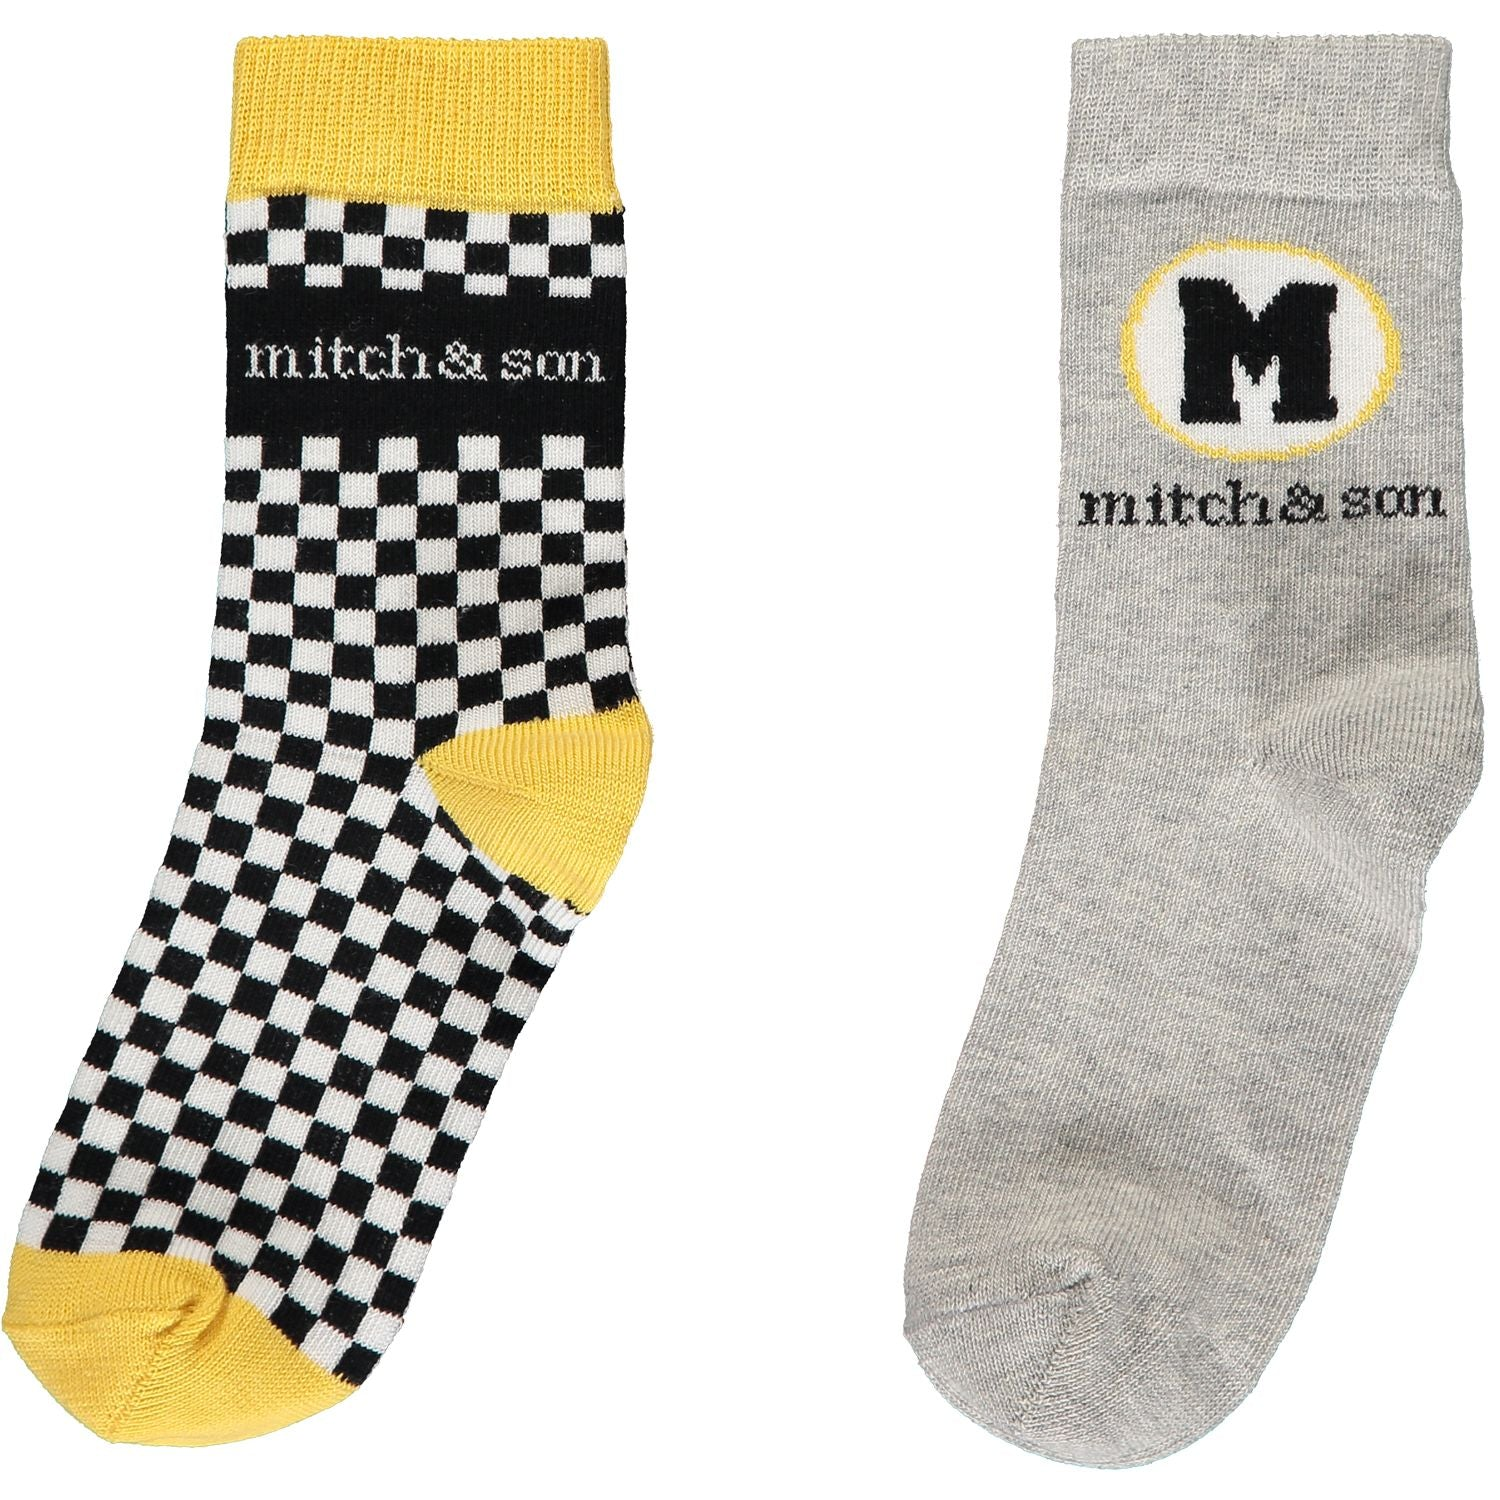 mitch & son socks